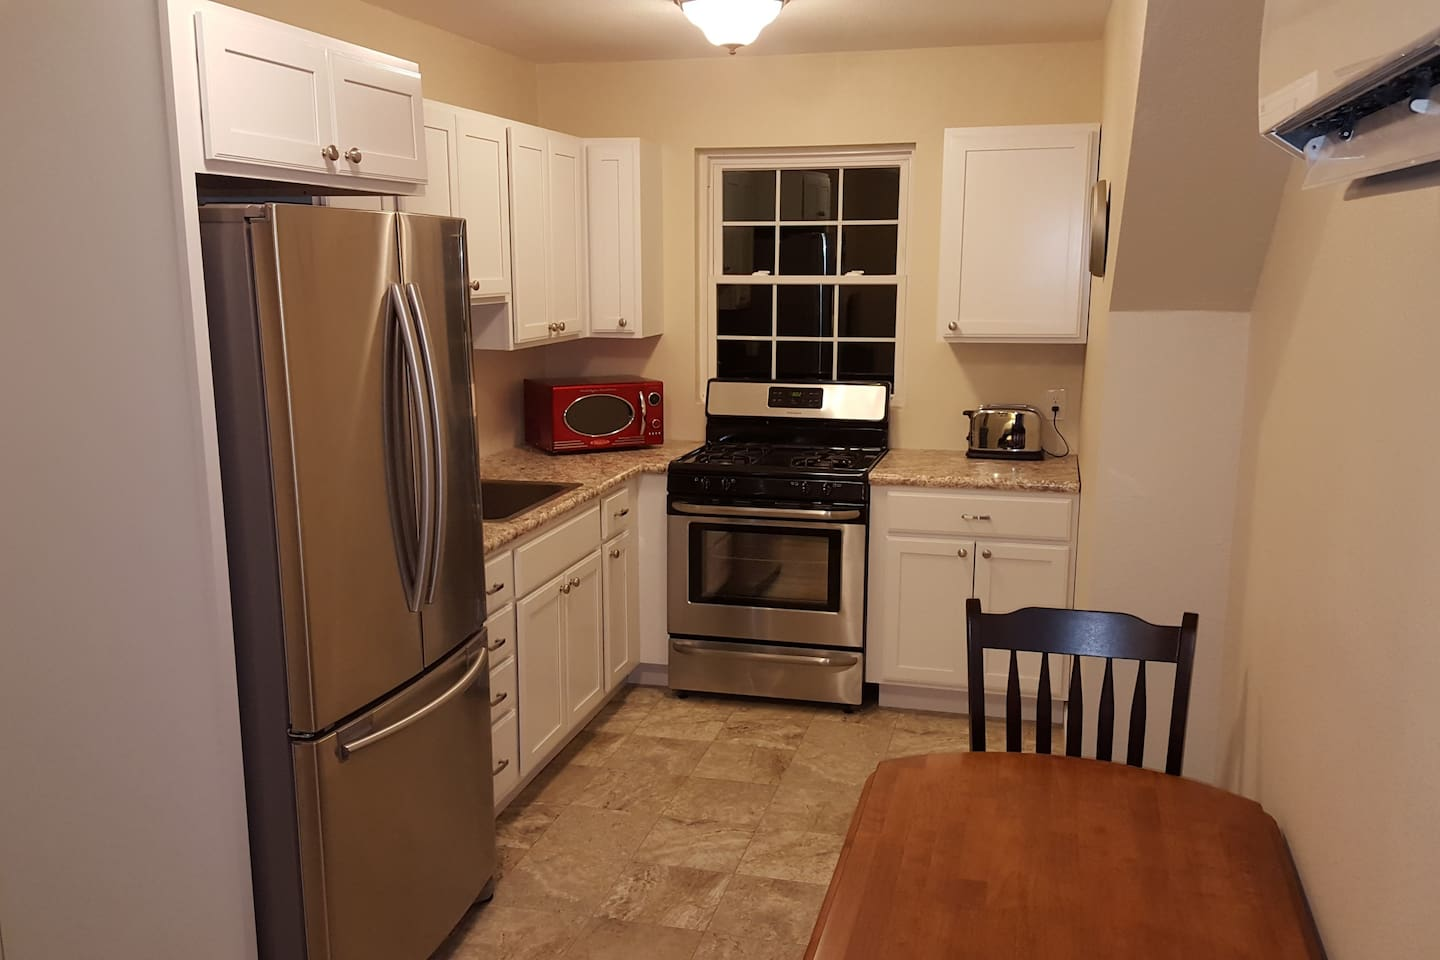 View of the fully equipped kitchen